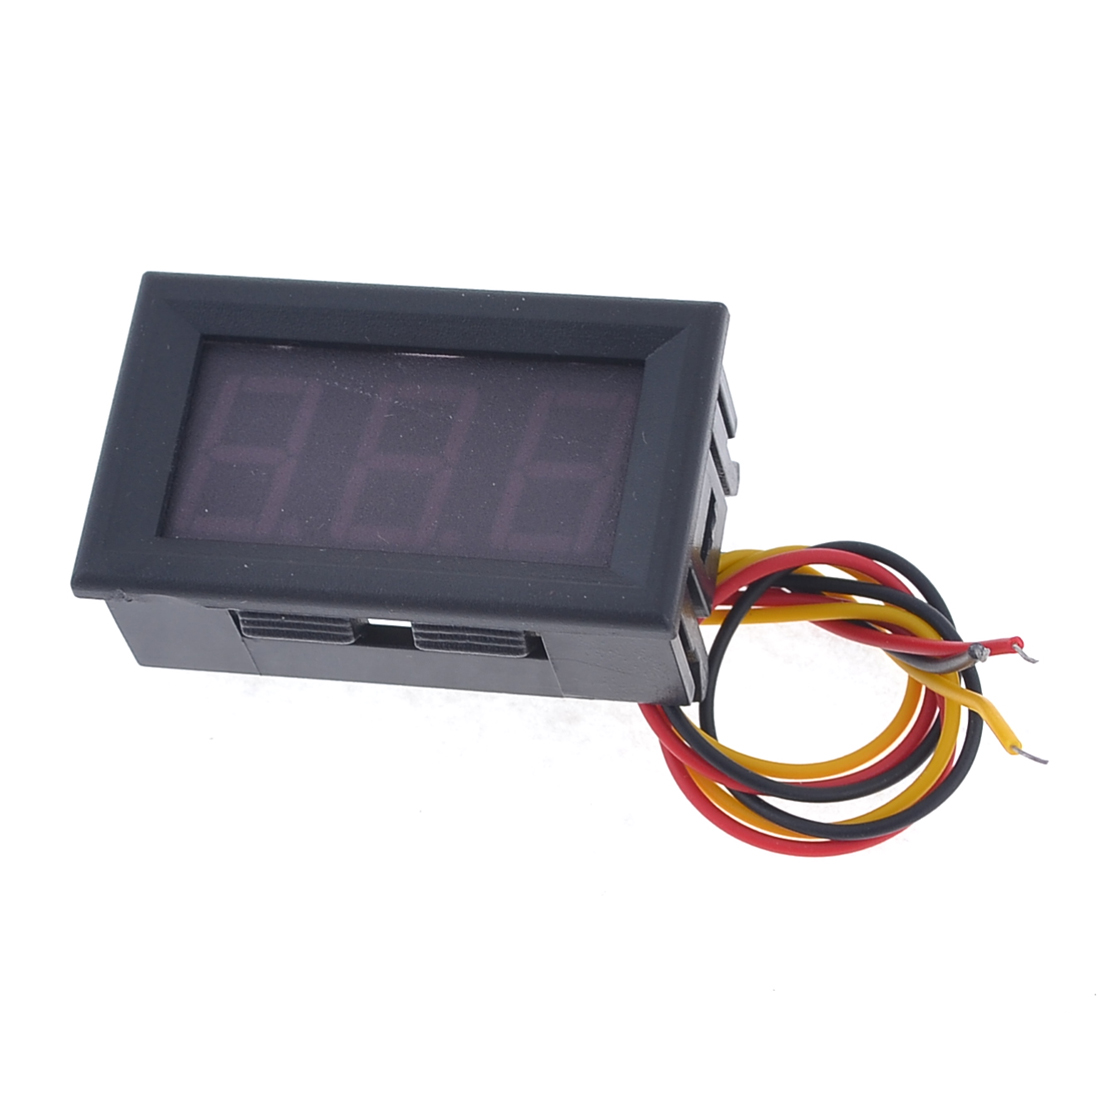 DC 9V-54V Yellow LED Display Electric Voltage Meter Auto Car Battery